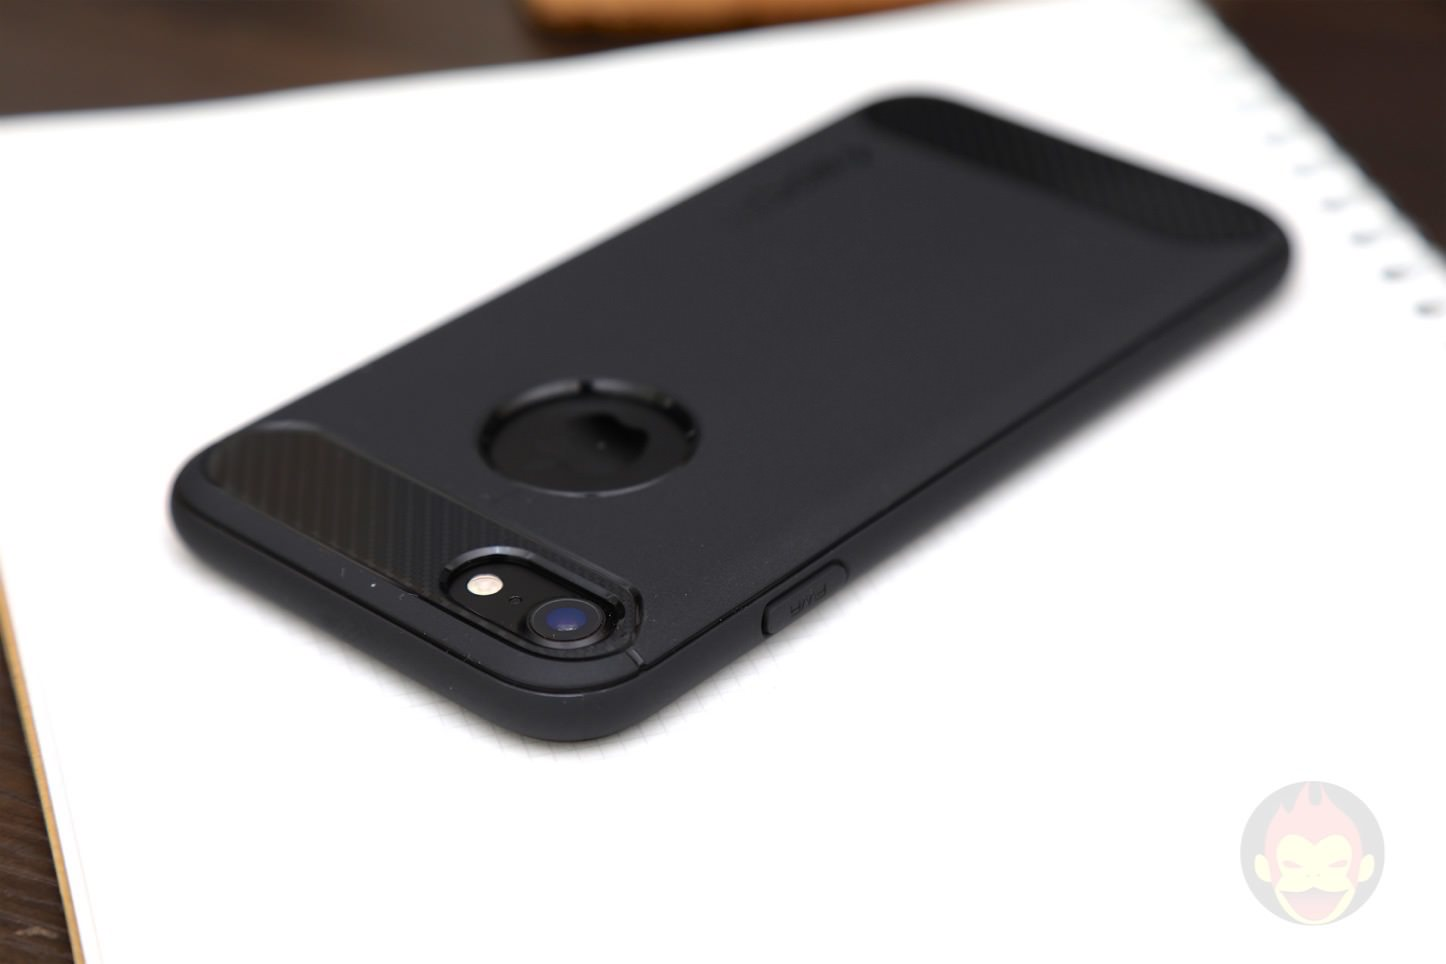 Rugged-Armor-for-iPhone7-7Plus-10.jpg